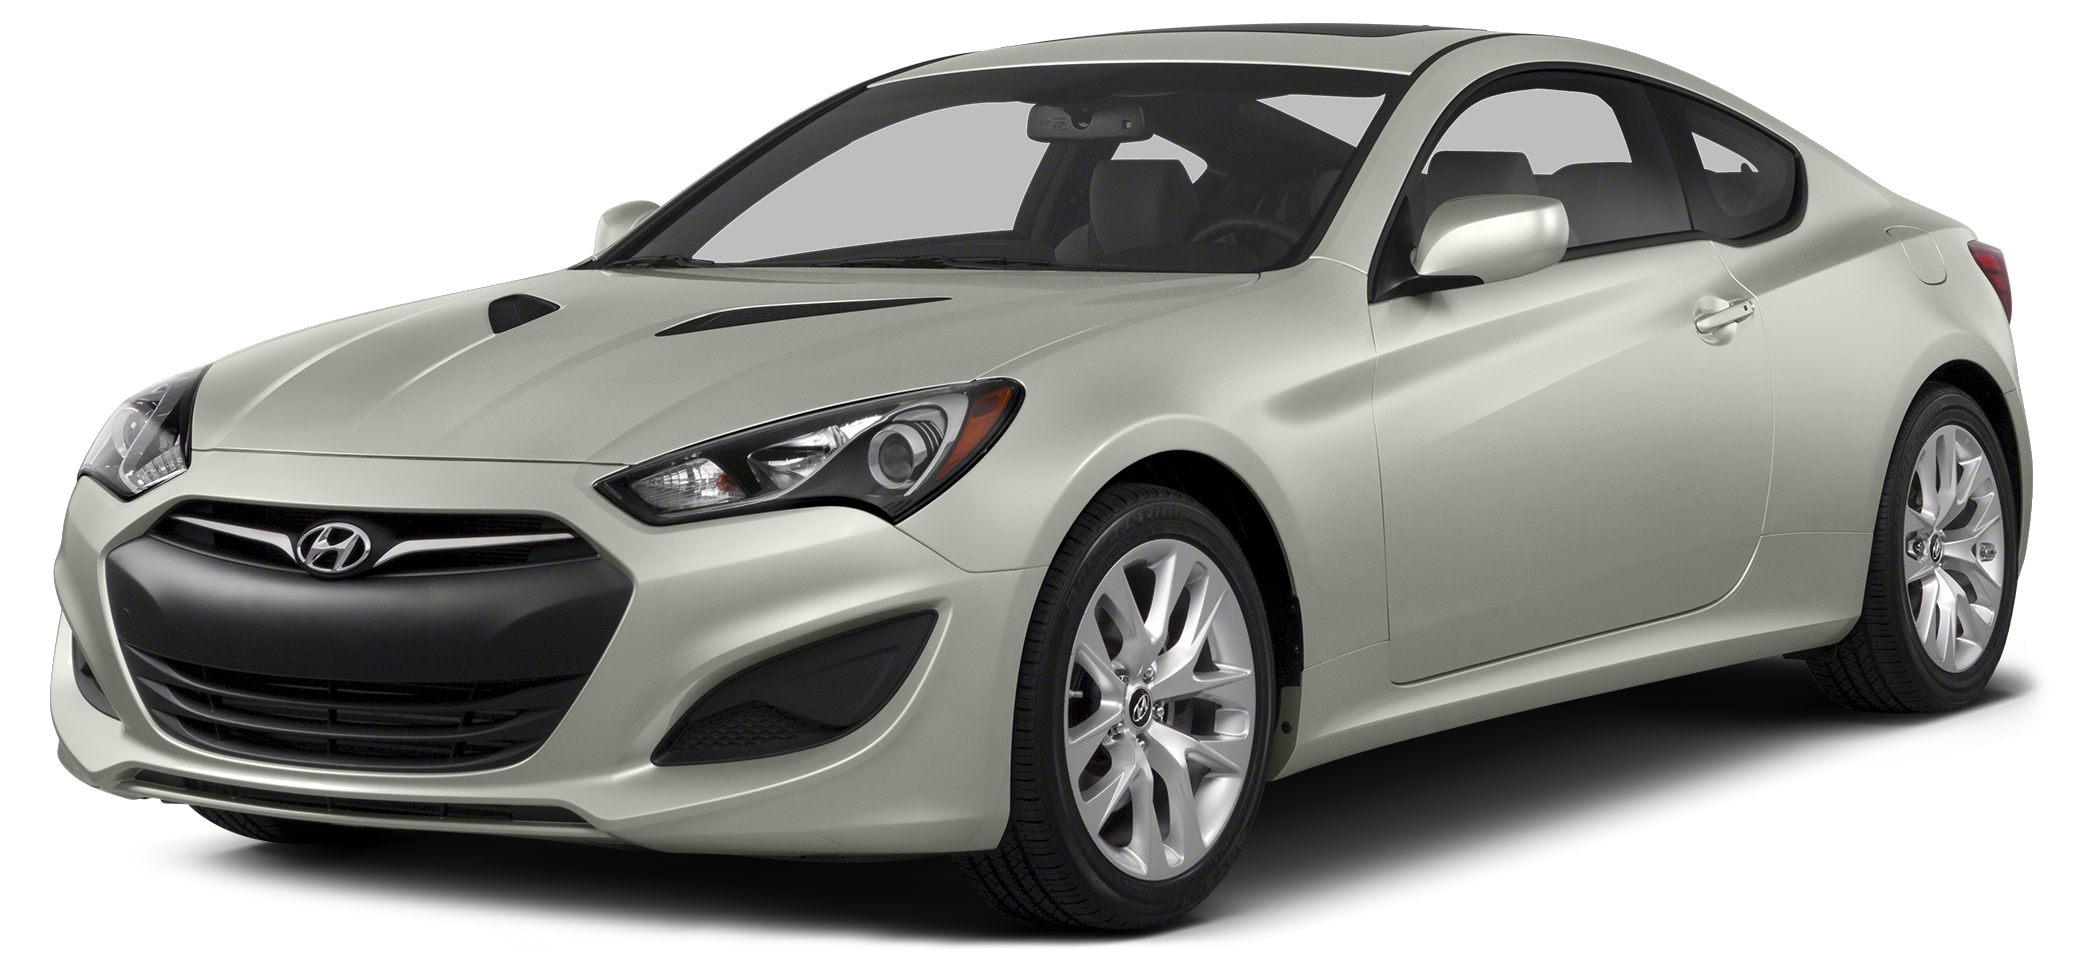 2013 Hyundai Genesis Coupe 20T Land a deal on this 2013 Hyundai Genesis Coupe 20T while we have